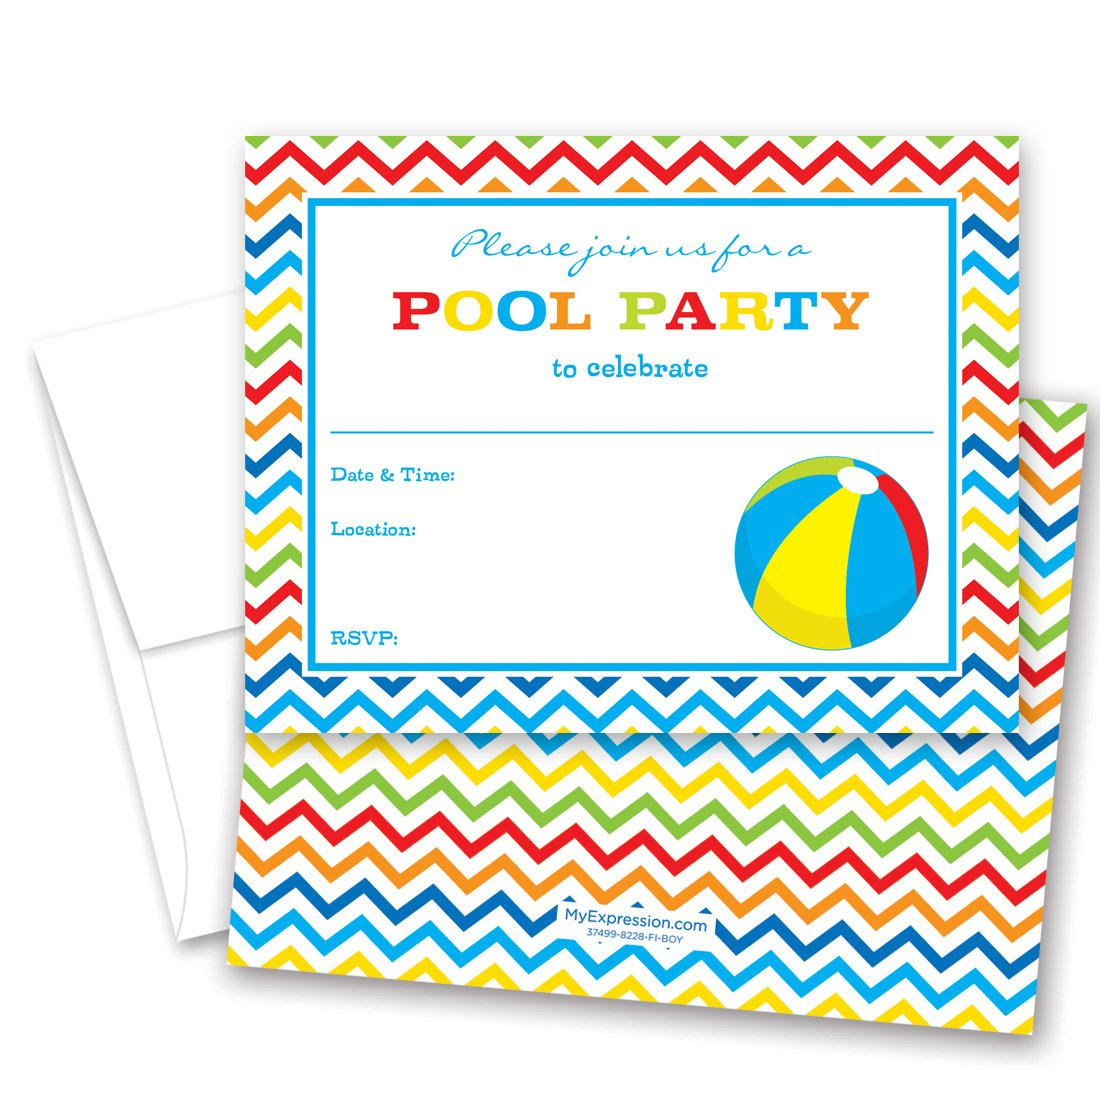 Amazon.com: 24 Pool Party Beach Ball Fill-in Kids Birthday Party ...